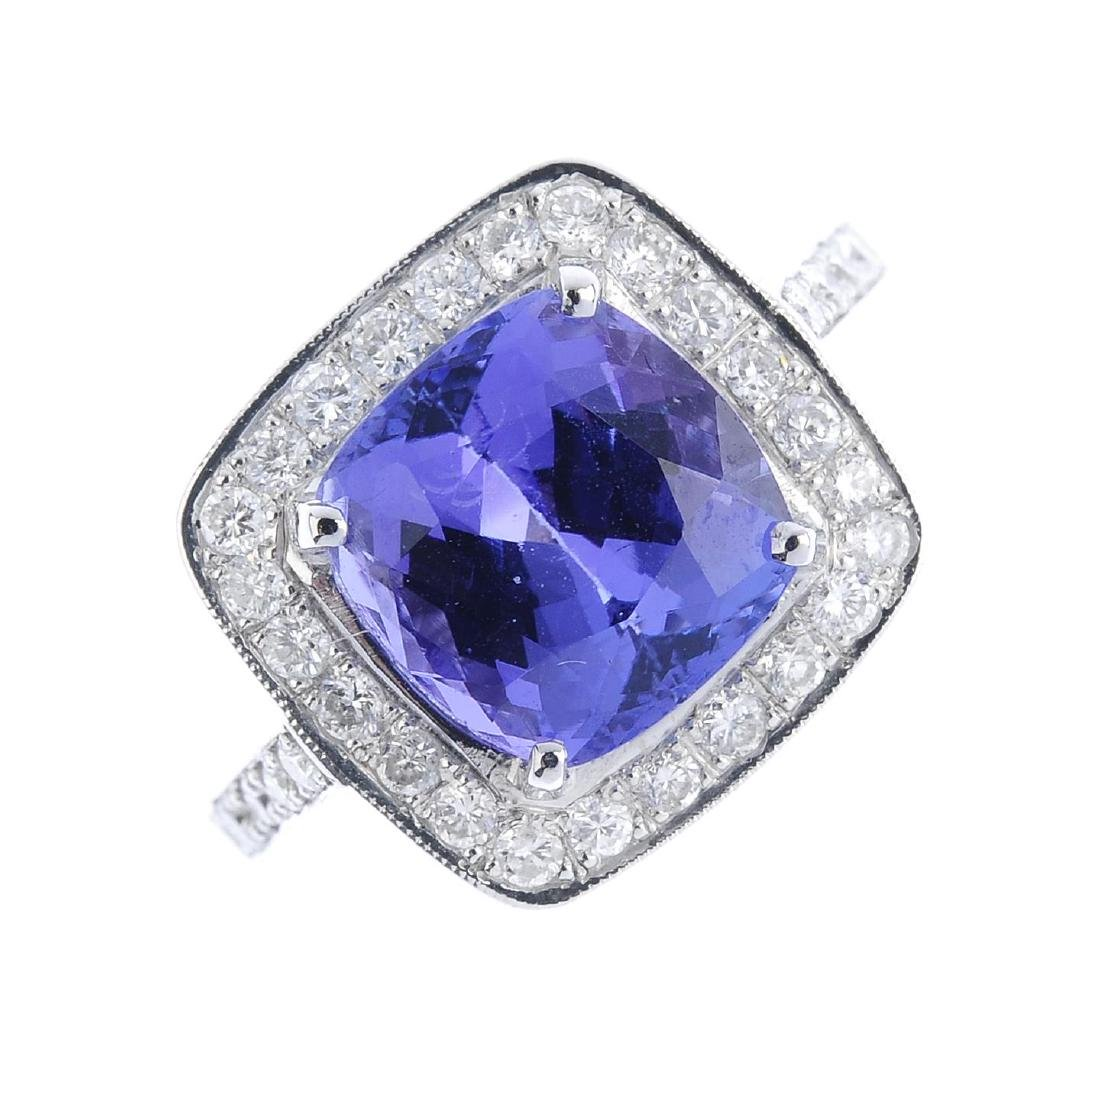 A tanzanite and diamond cluster ring. The cushion-shape